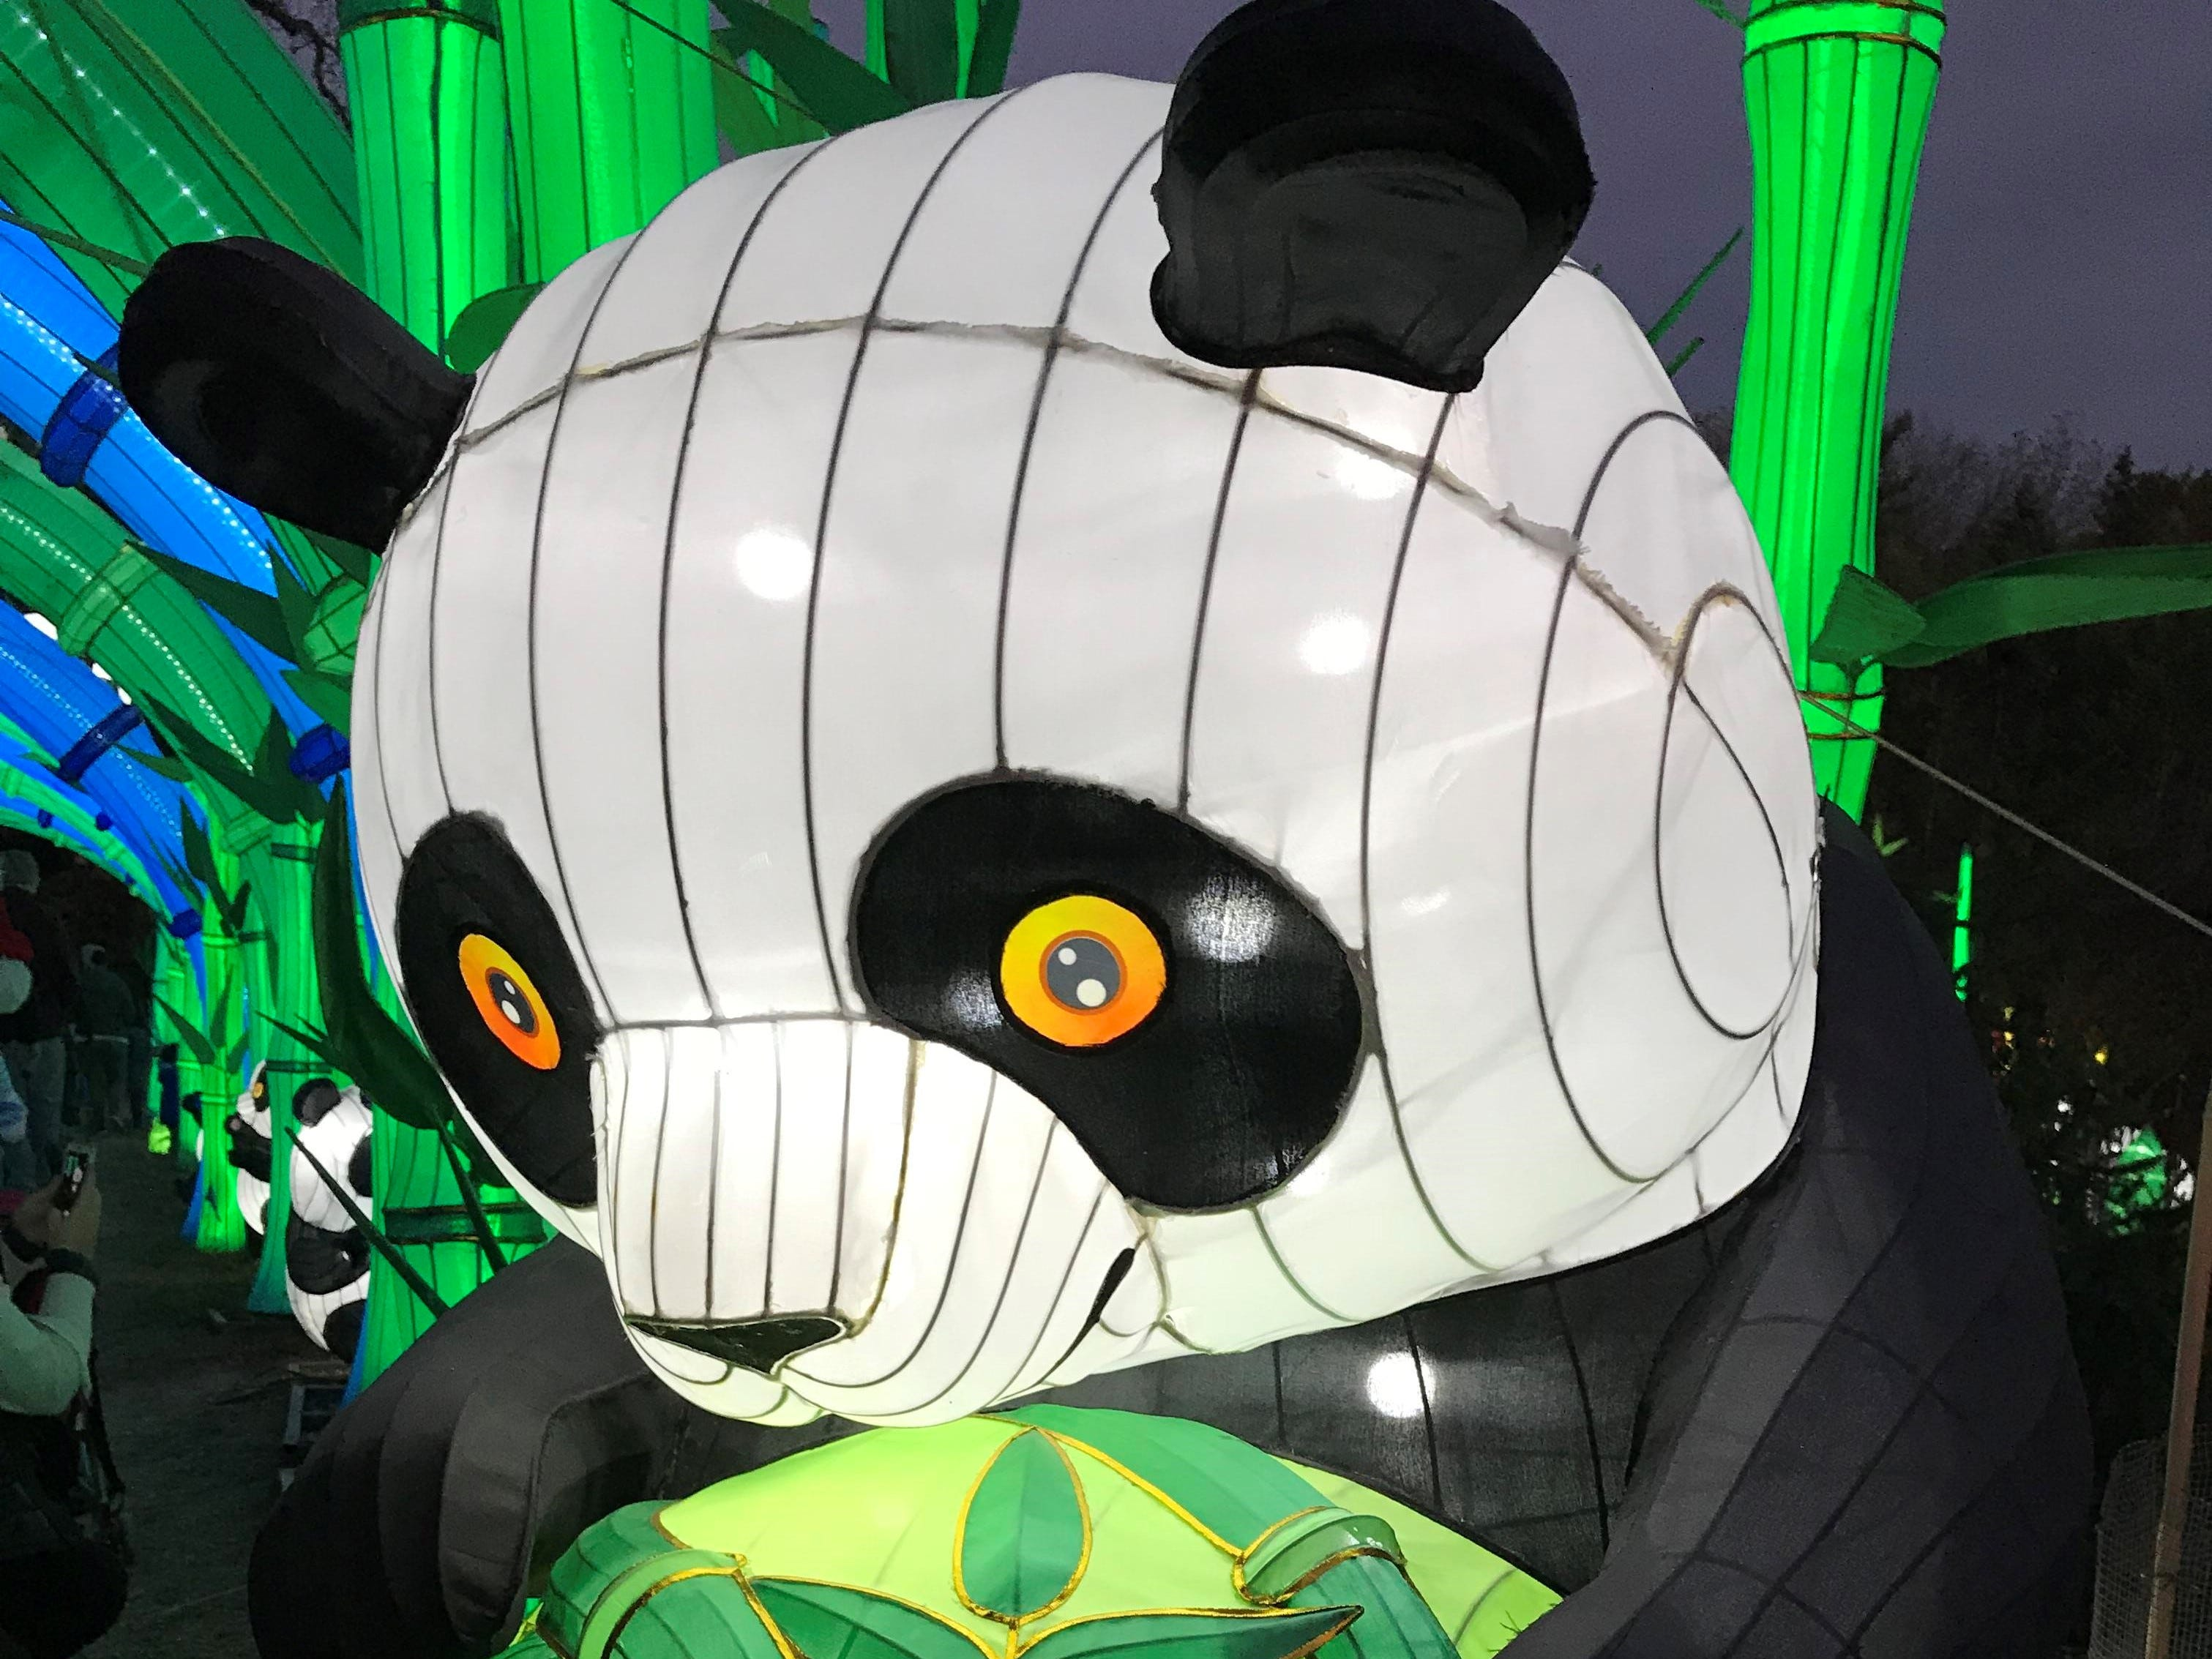 The China Lights lantern festival in 2018 is all about the pandas. The theme for this year's popular event is Panda-Mania.